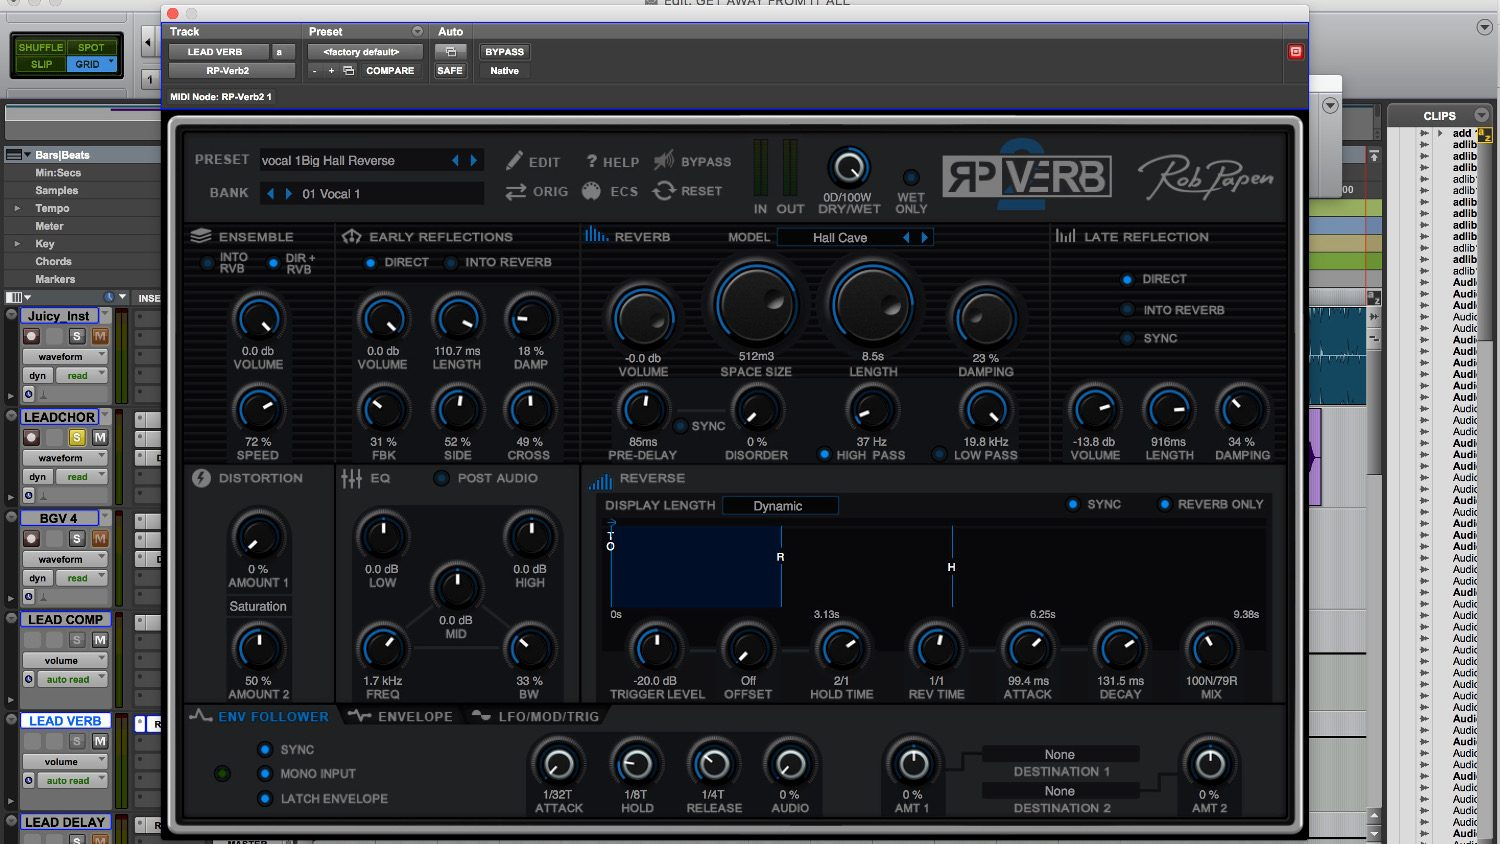 Rob Papen RP-Verb 2 Main